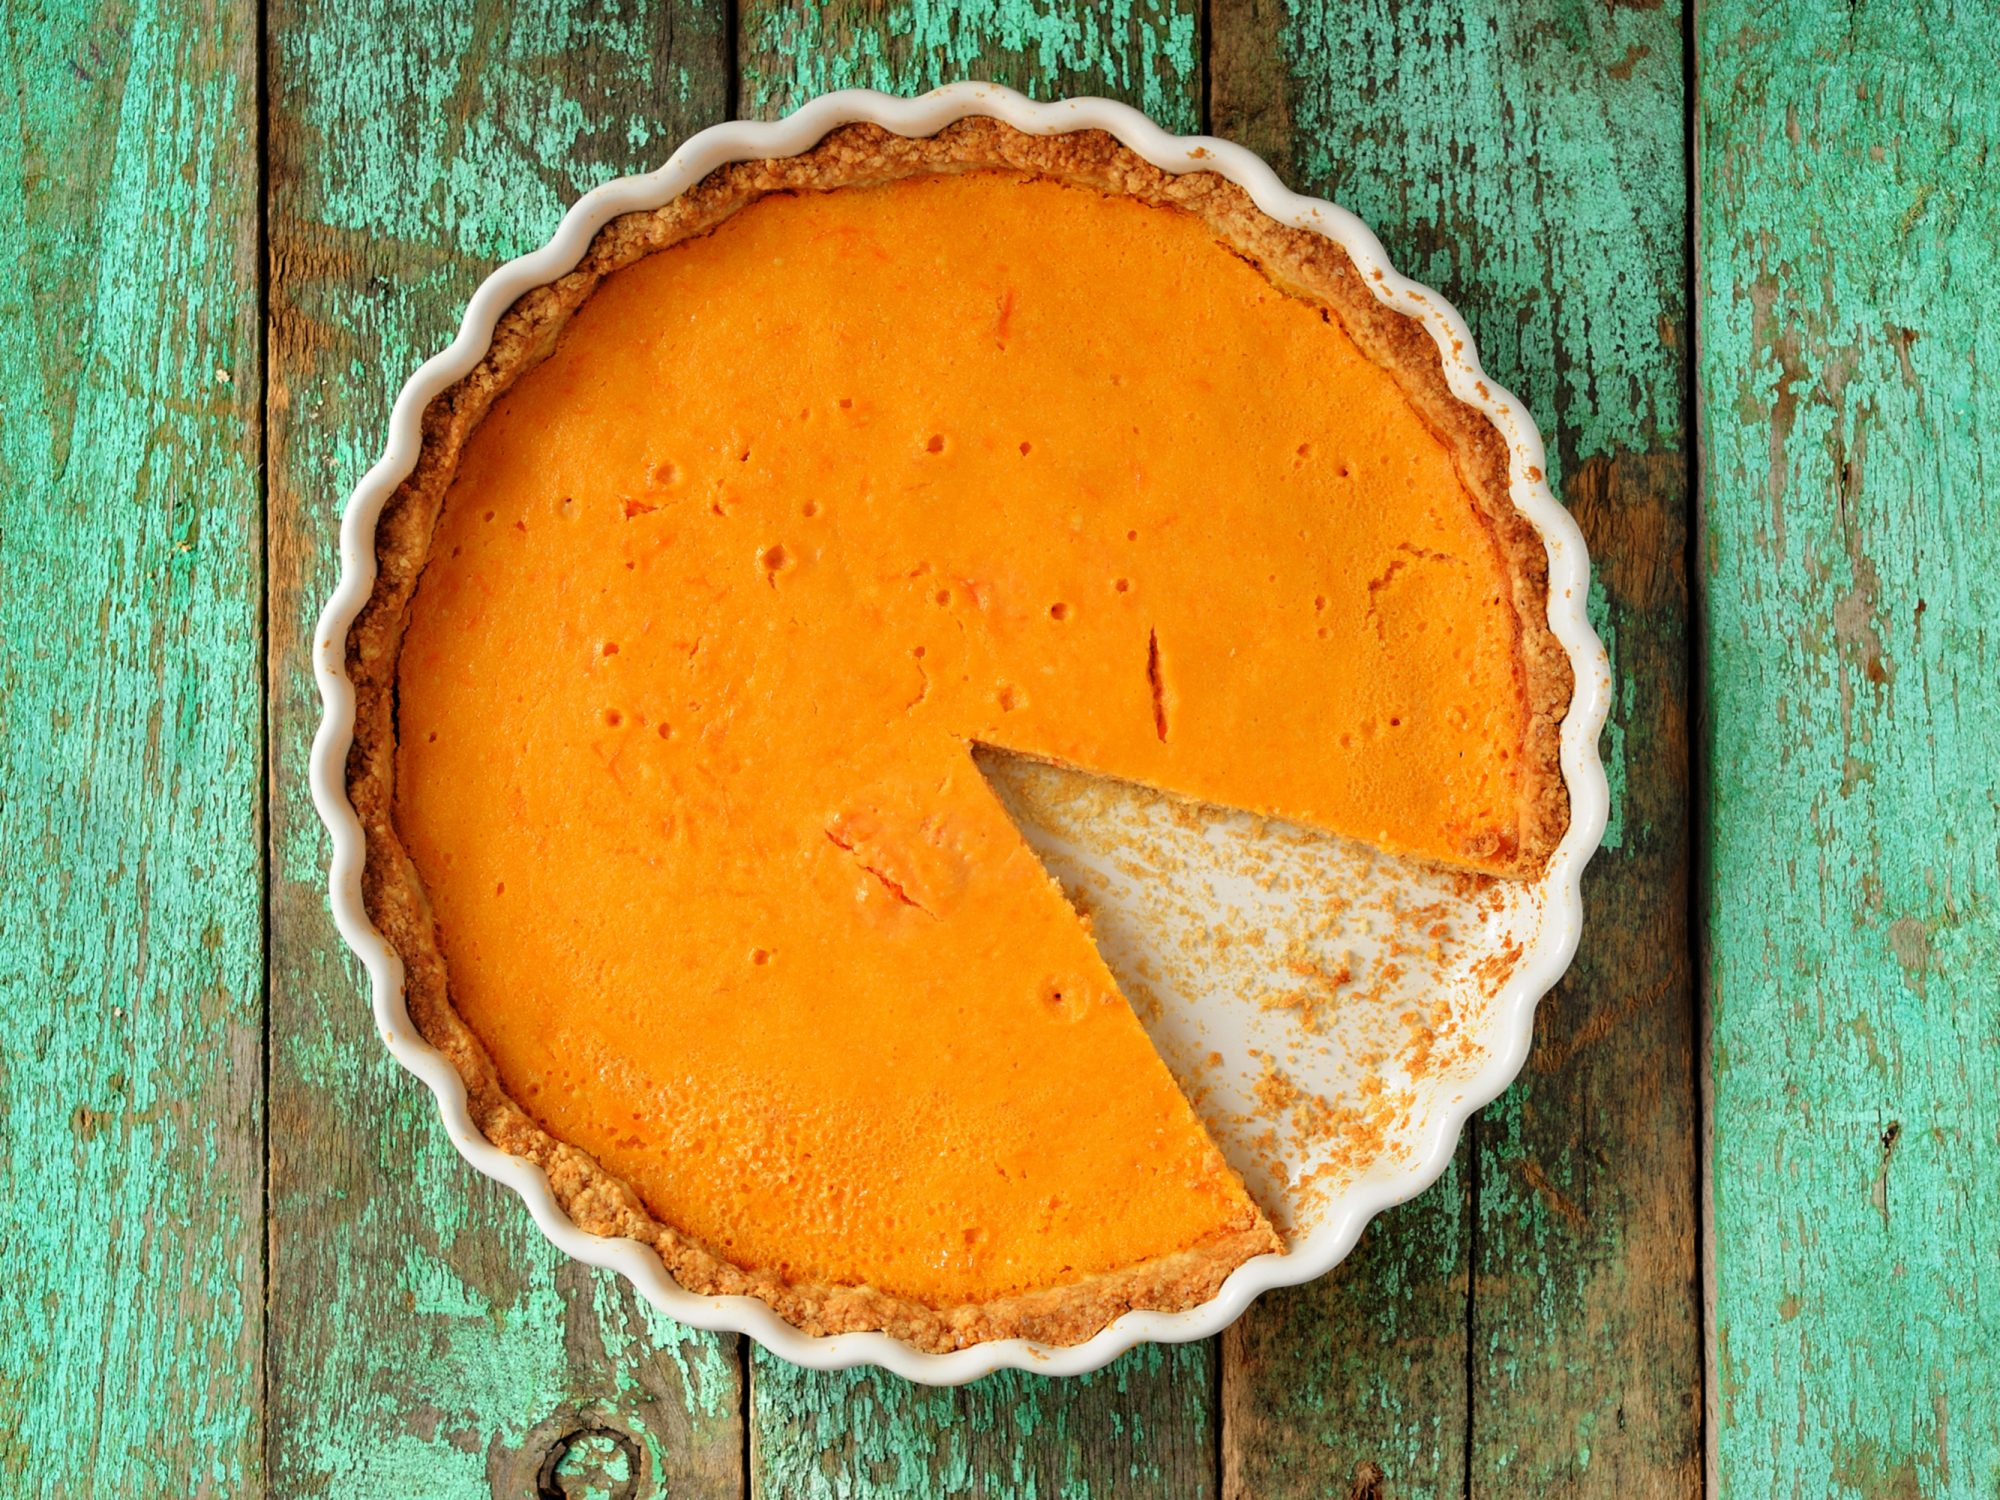 How to Make Homemade Pumpkin Pie (From an Actual Pumpkin!)